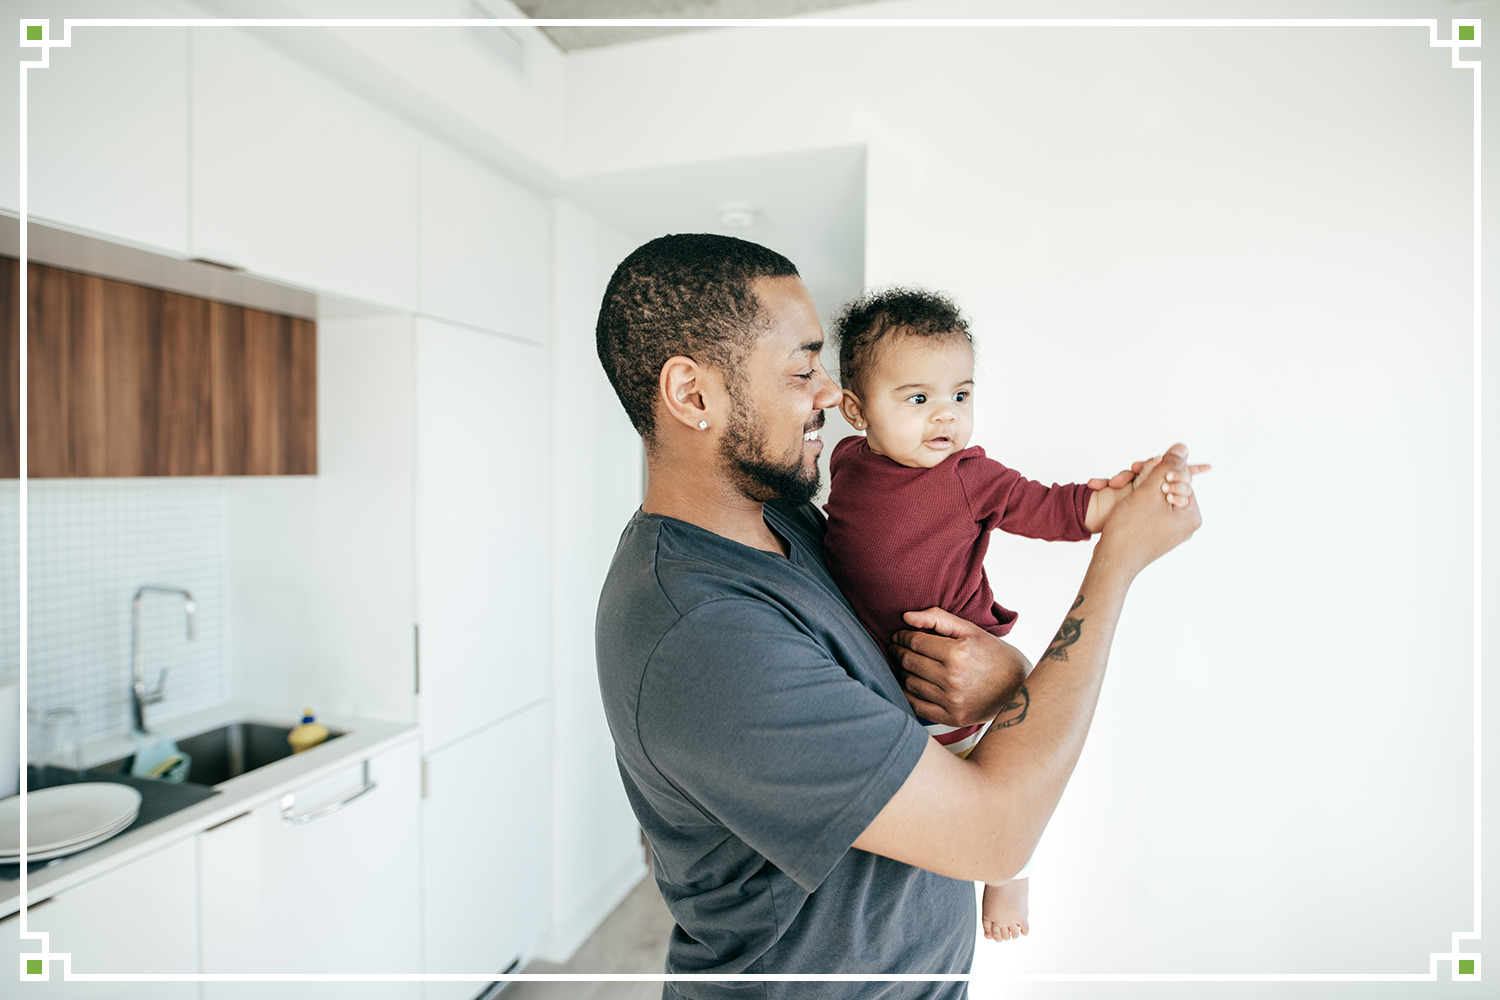 father with young infant pointing at something